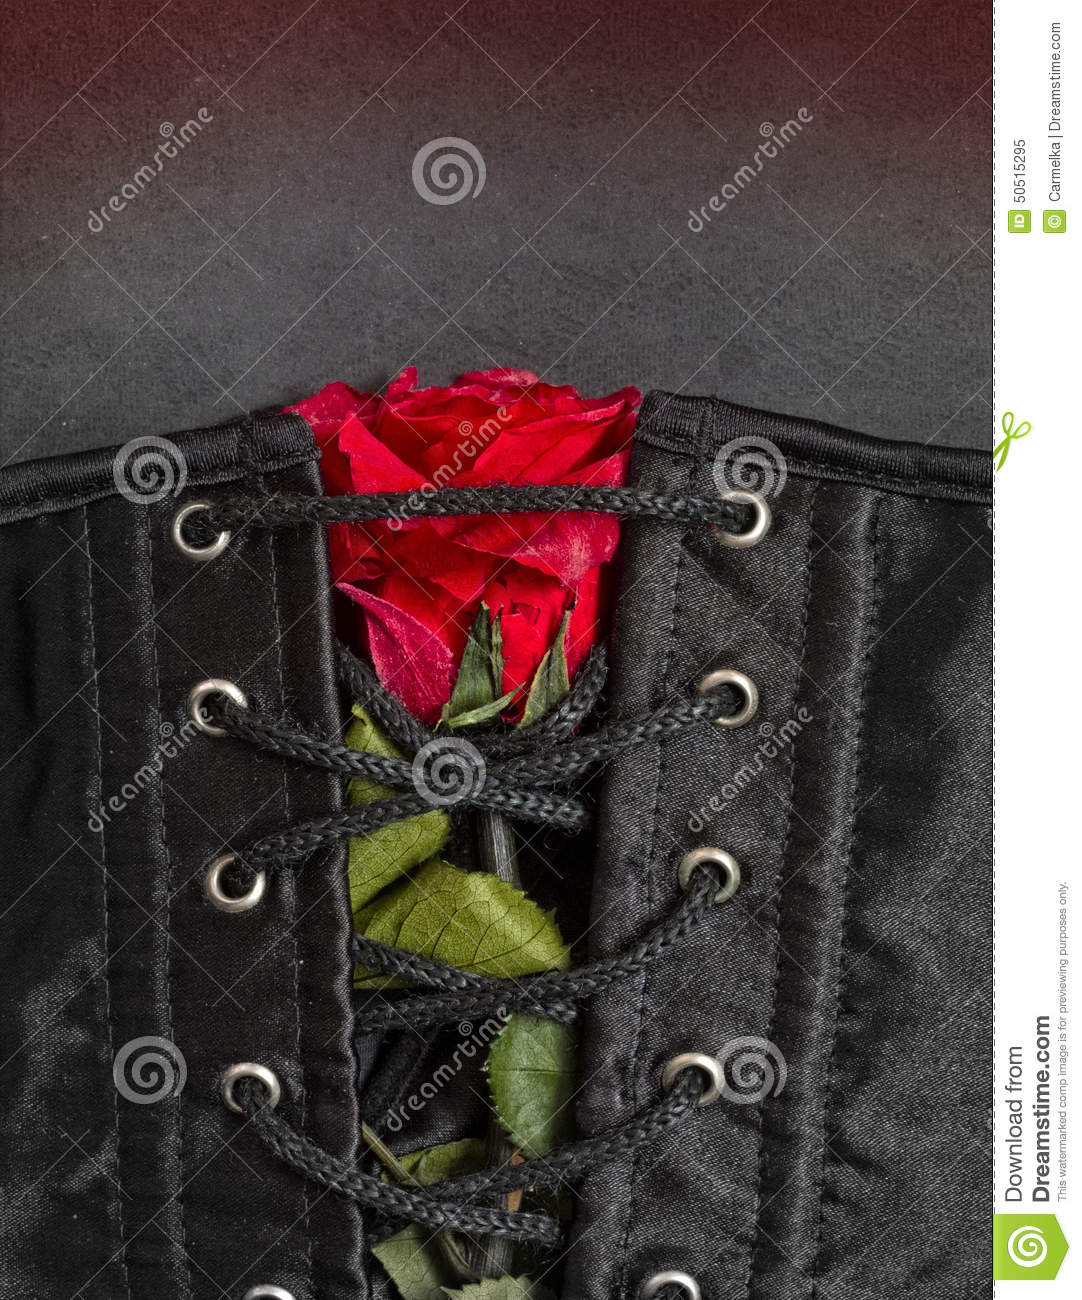 Bdsm gothic fetish corset with rose